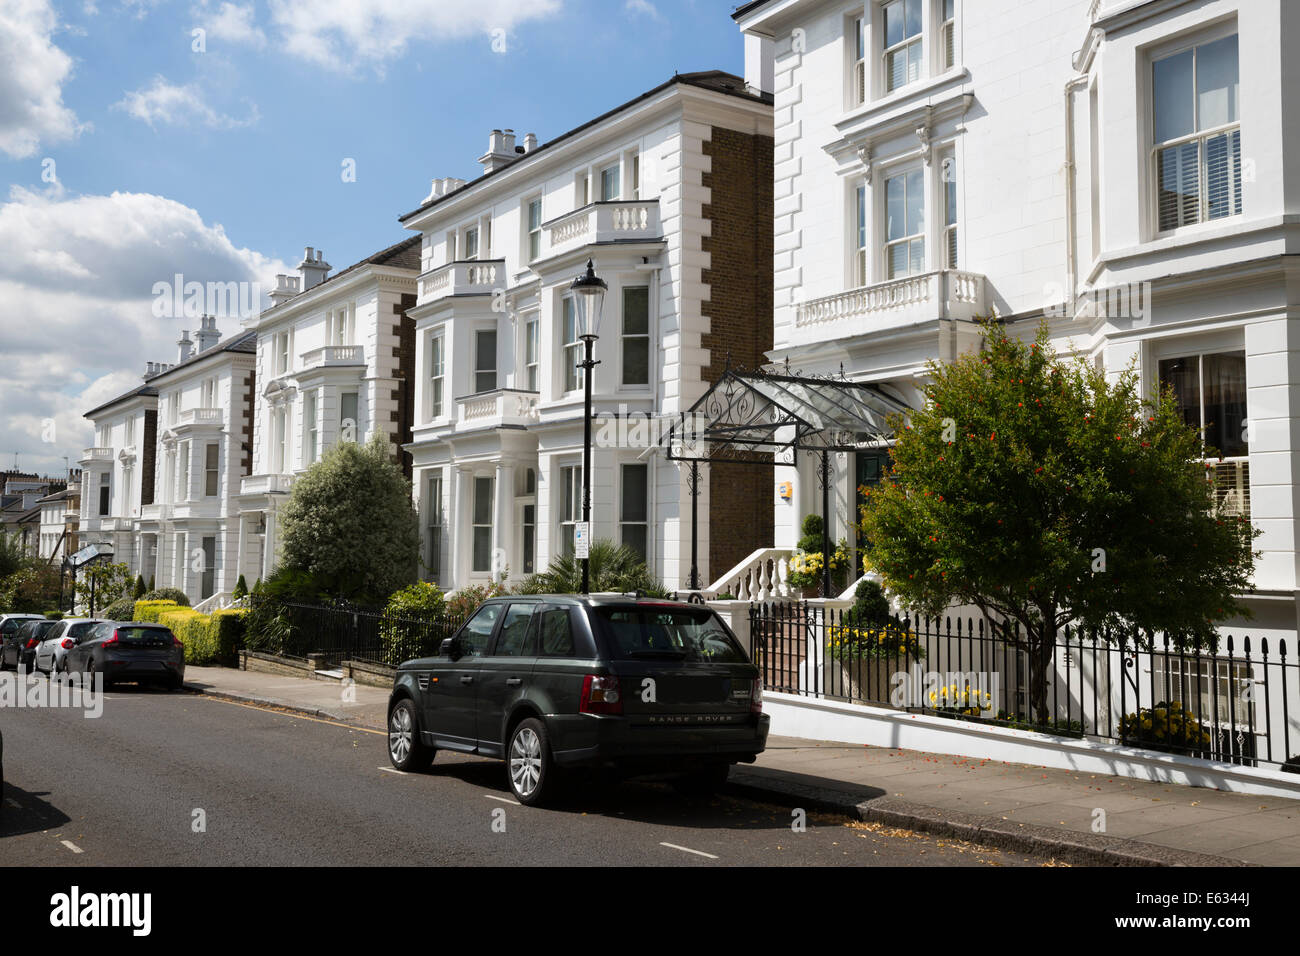 Exclusive properties, Phillimore Gardens W8, Kensington, London, England, United Kingdom, Europe - Stock Image